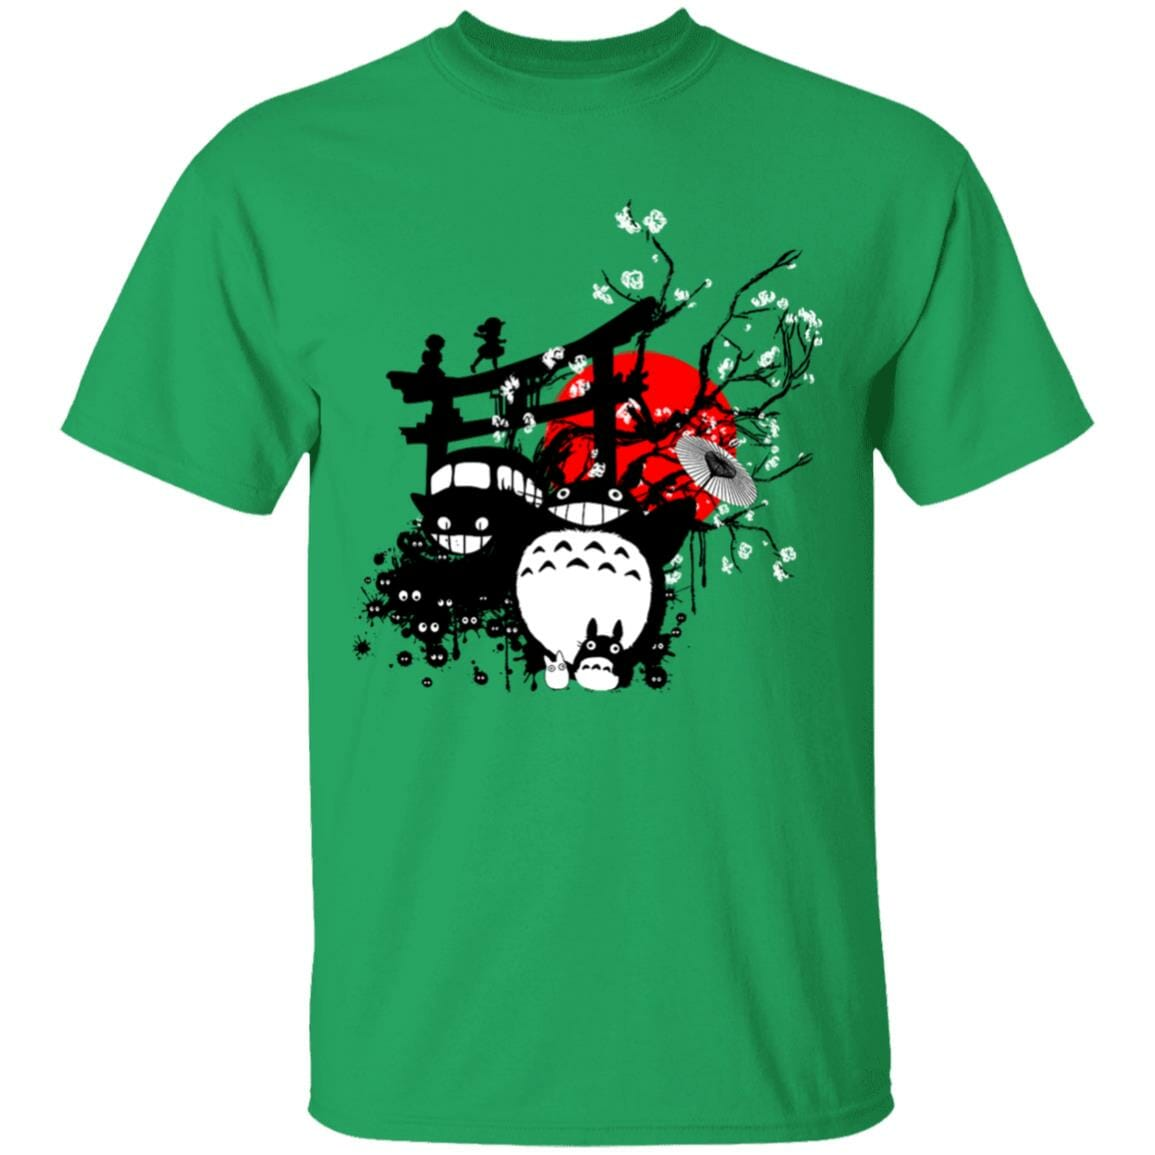 Totoro and Friends by the Red Moon T Shirt